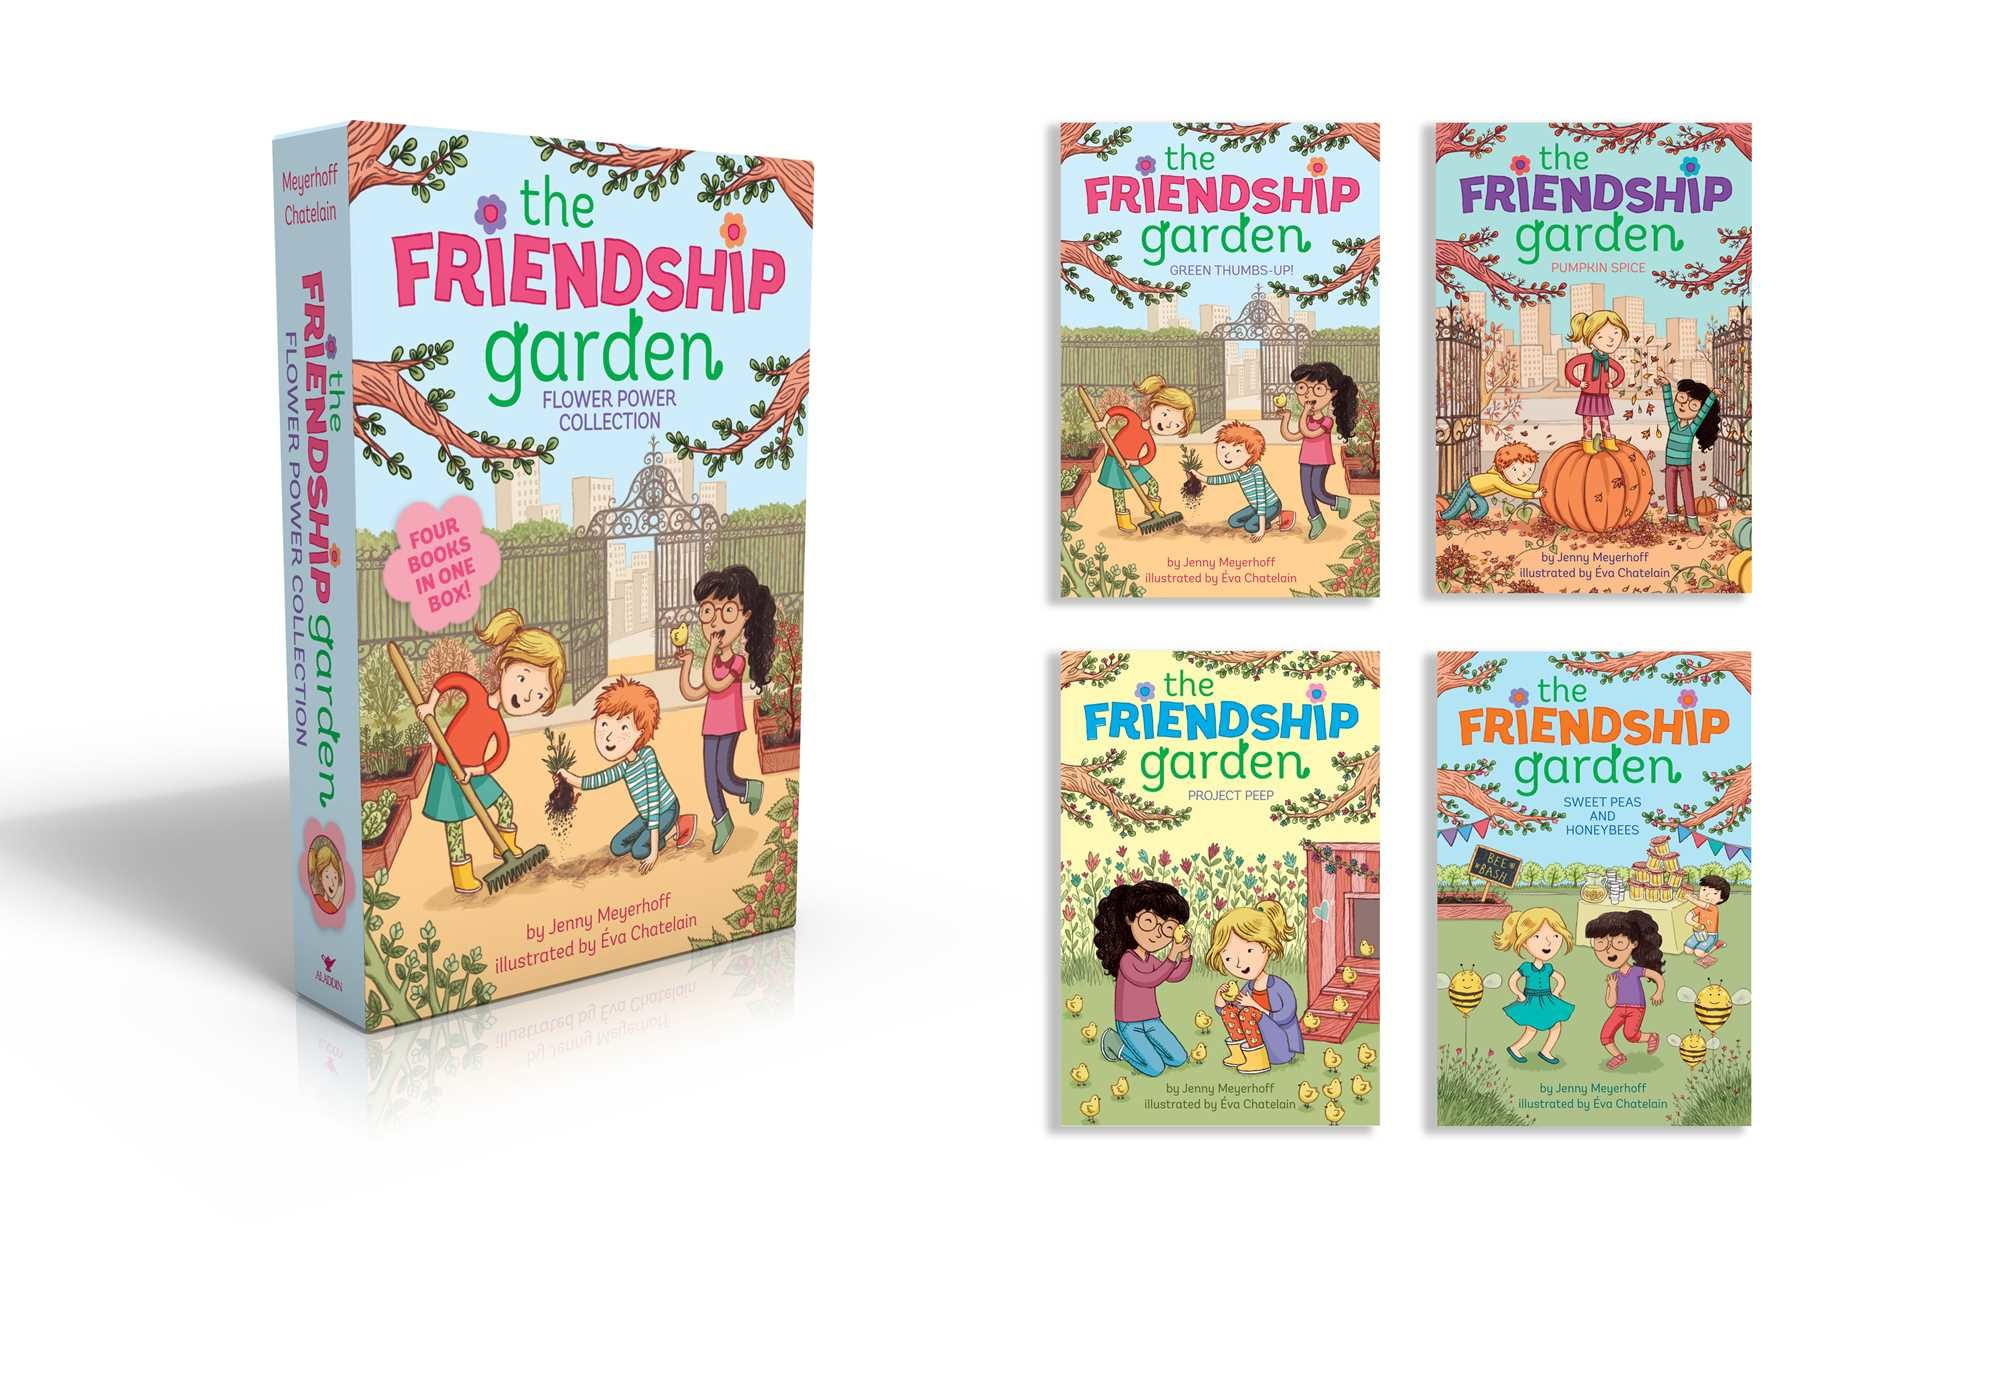 The Friendship Garden Flower Power Collection